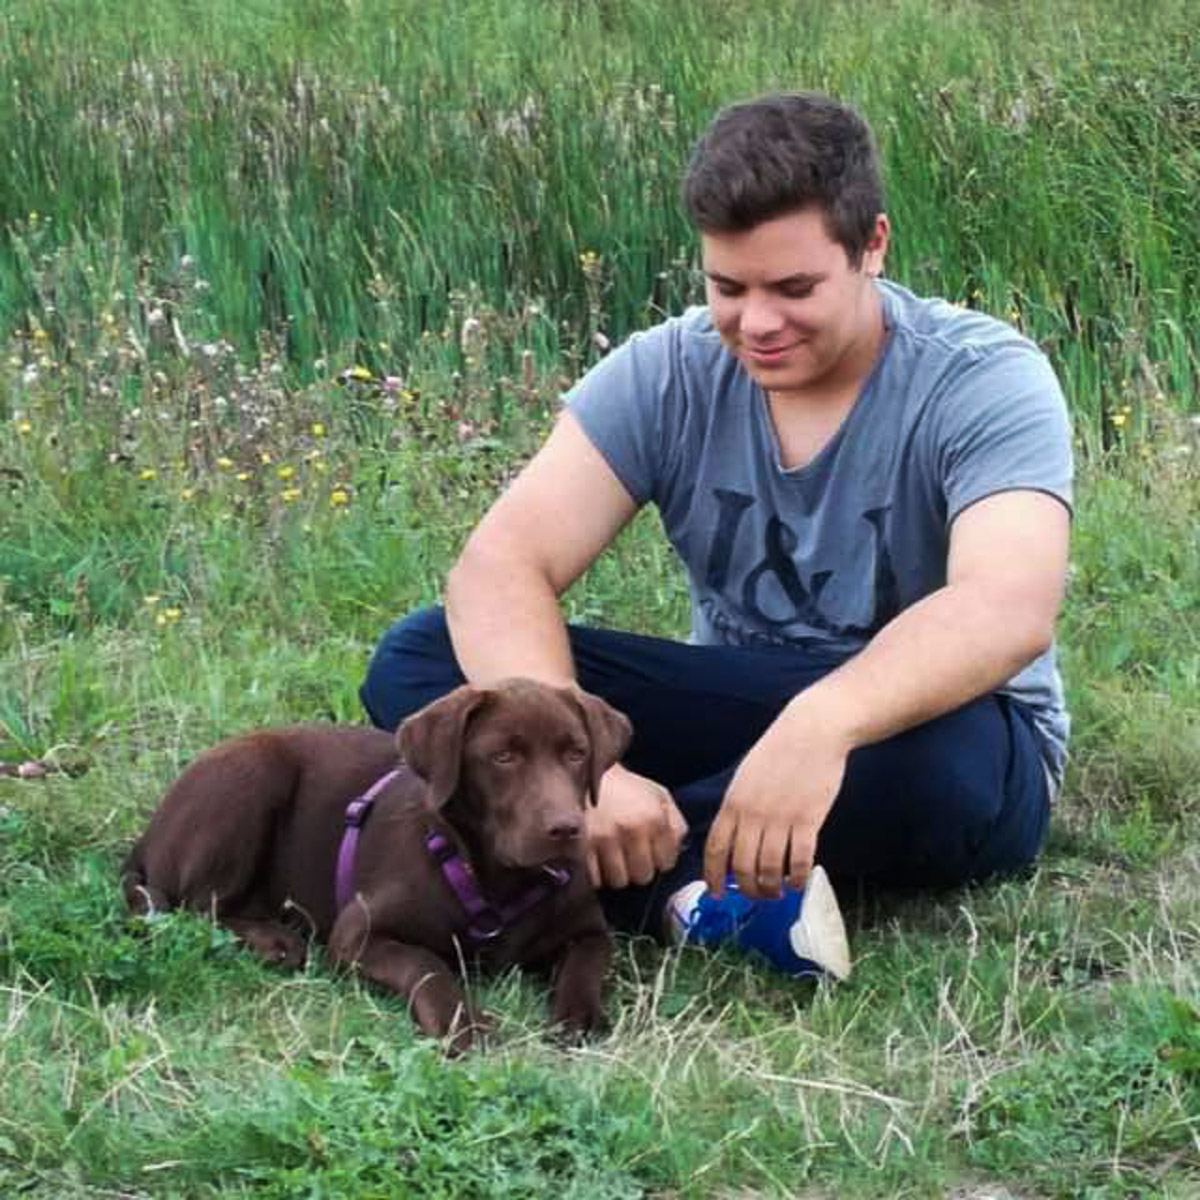 photo of Ailuna app developer Alex with his dog sitting on grass